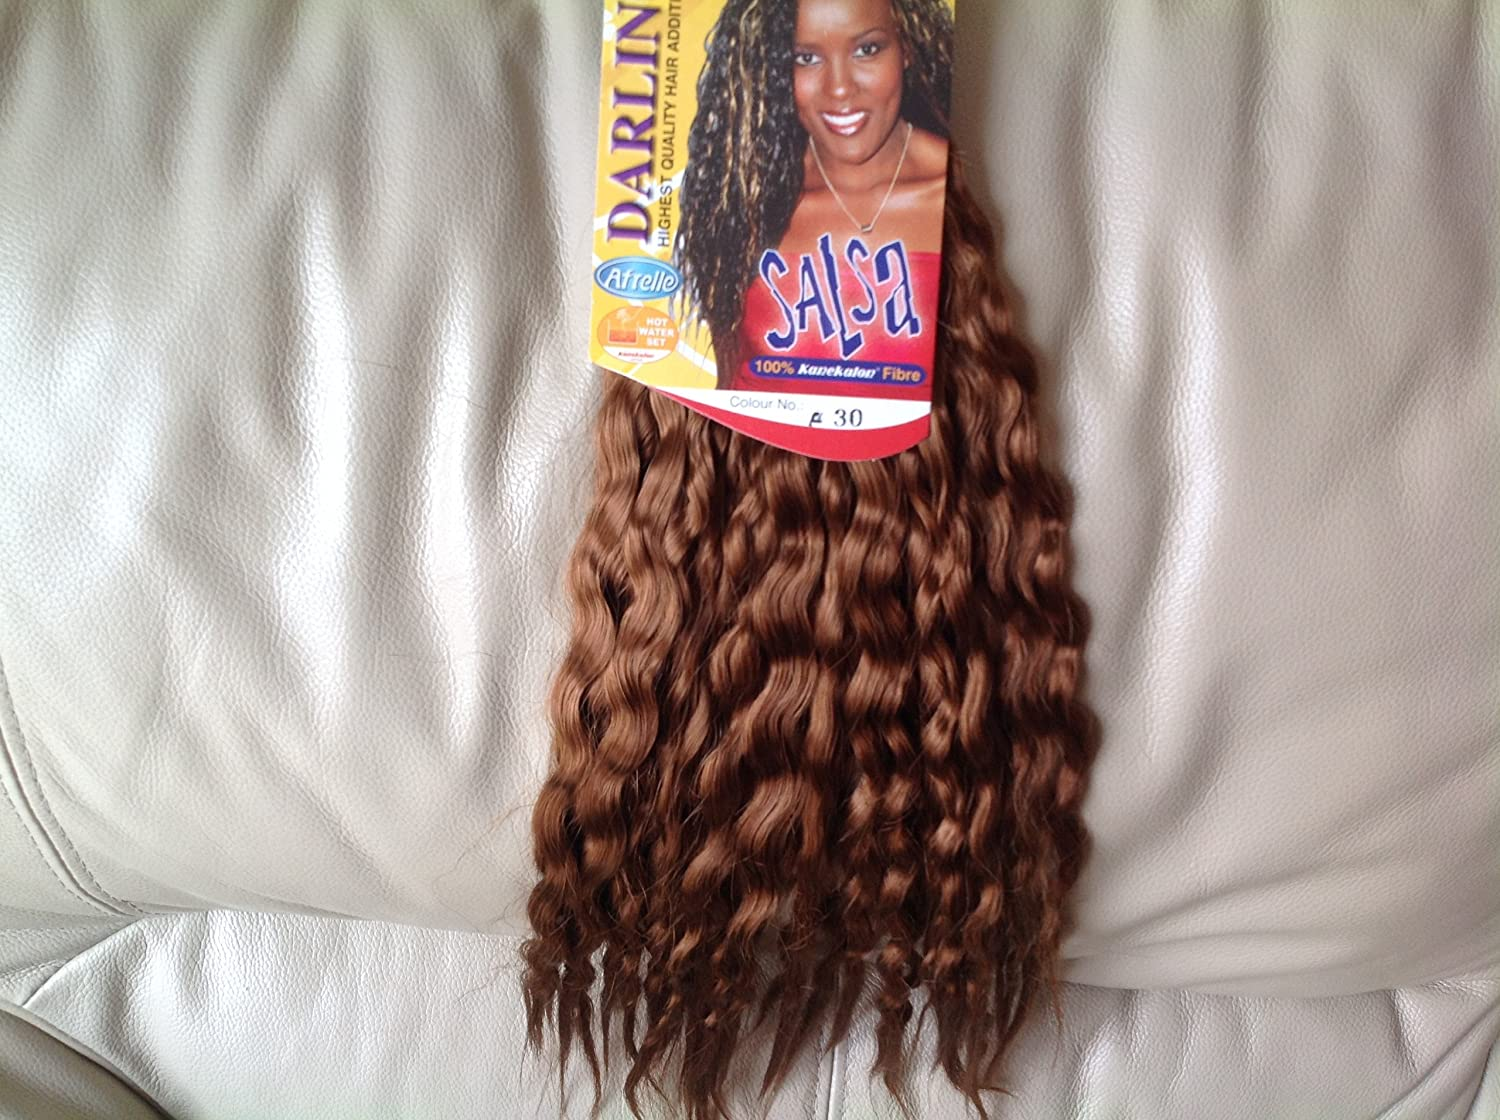 Salsa Darling Kenya Hair Extensions For Braidinglour 30 And 4